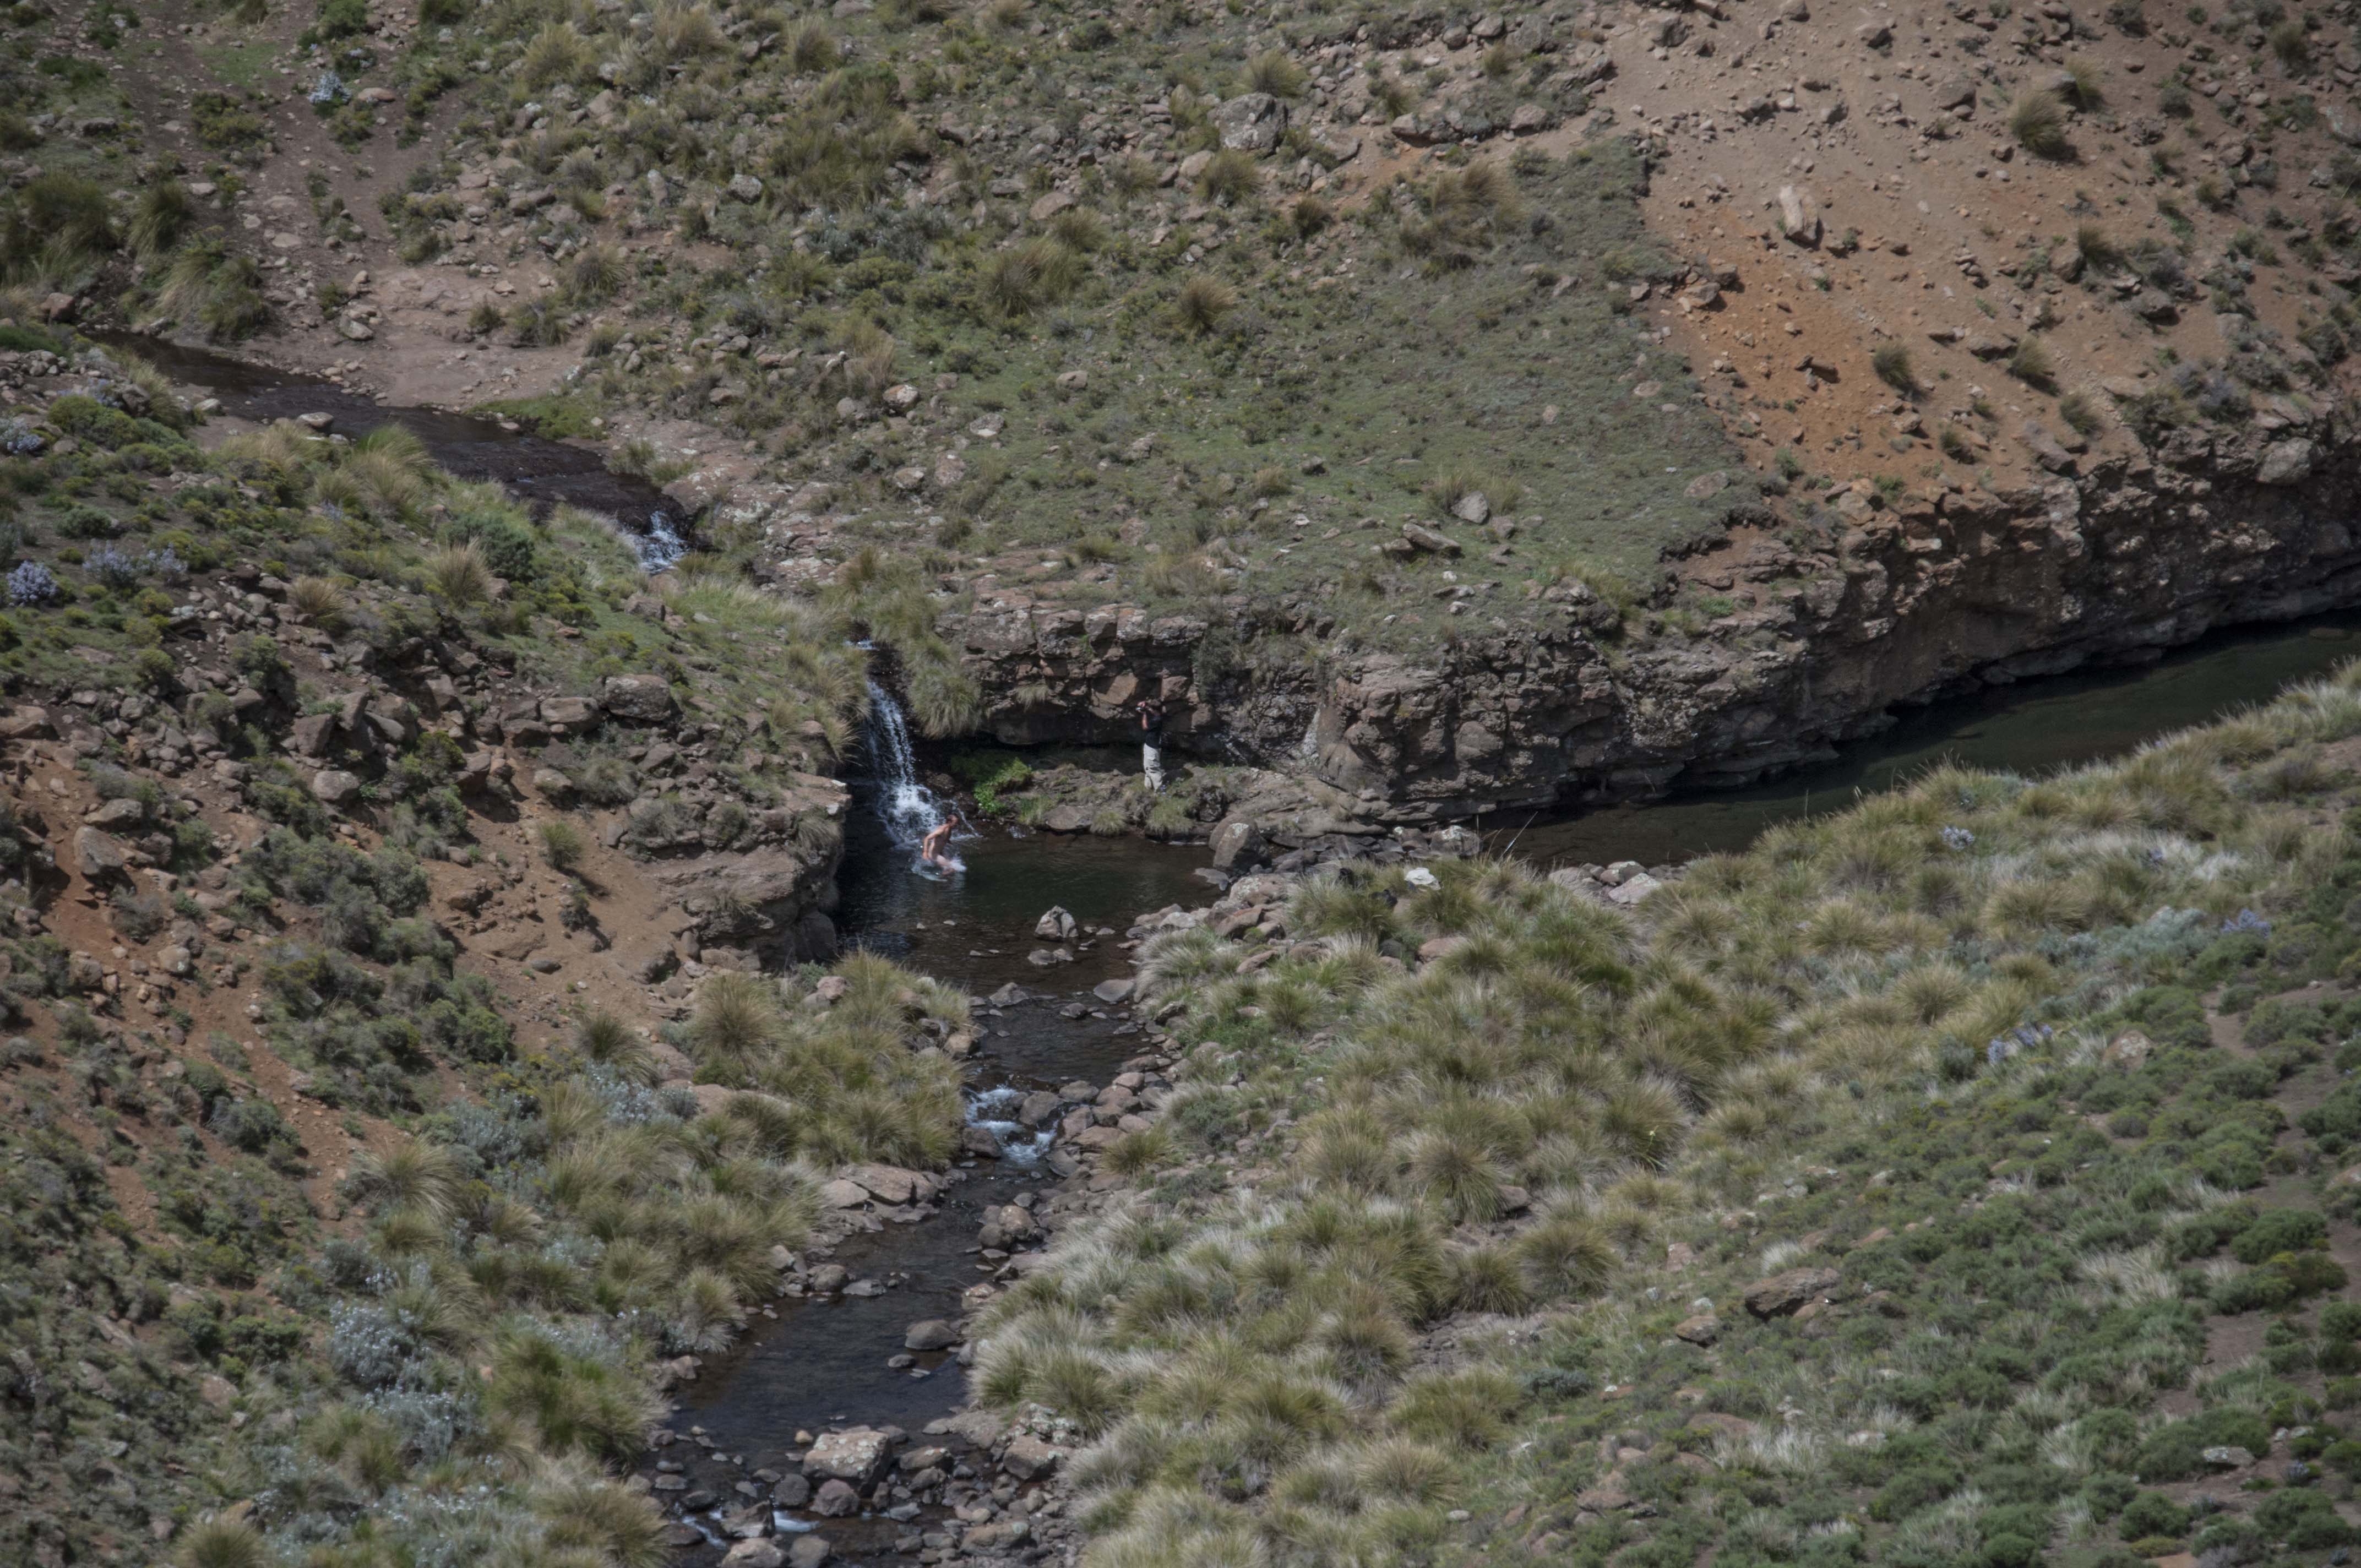 lesotho_fly_fishing_trout_hiking - 175